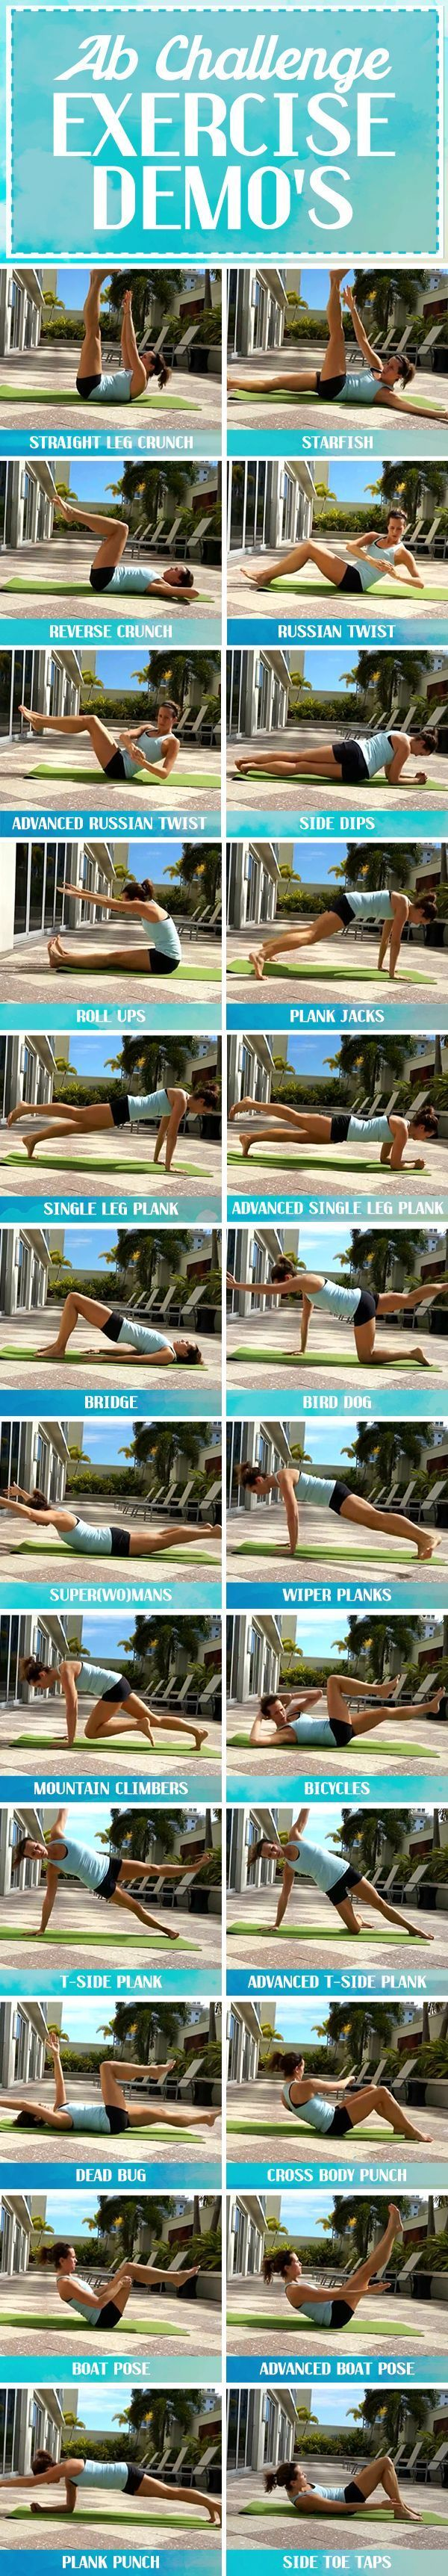 Ab Challenge Exercises Demonstrated - RunToTheFinish #abchallenge